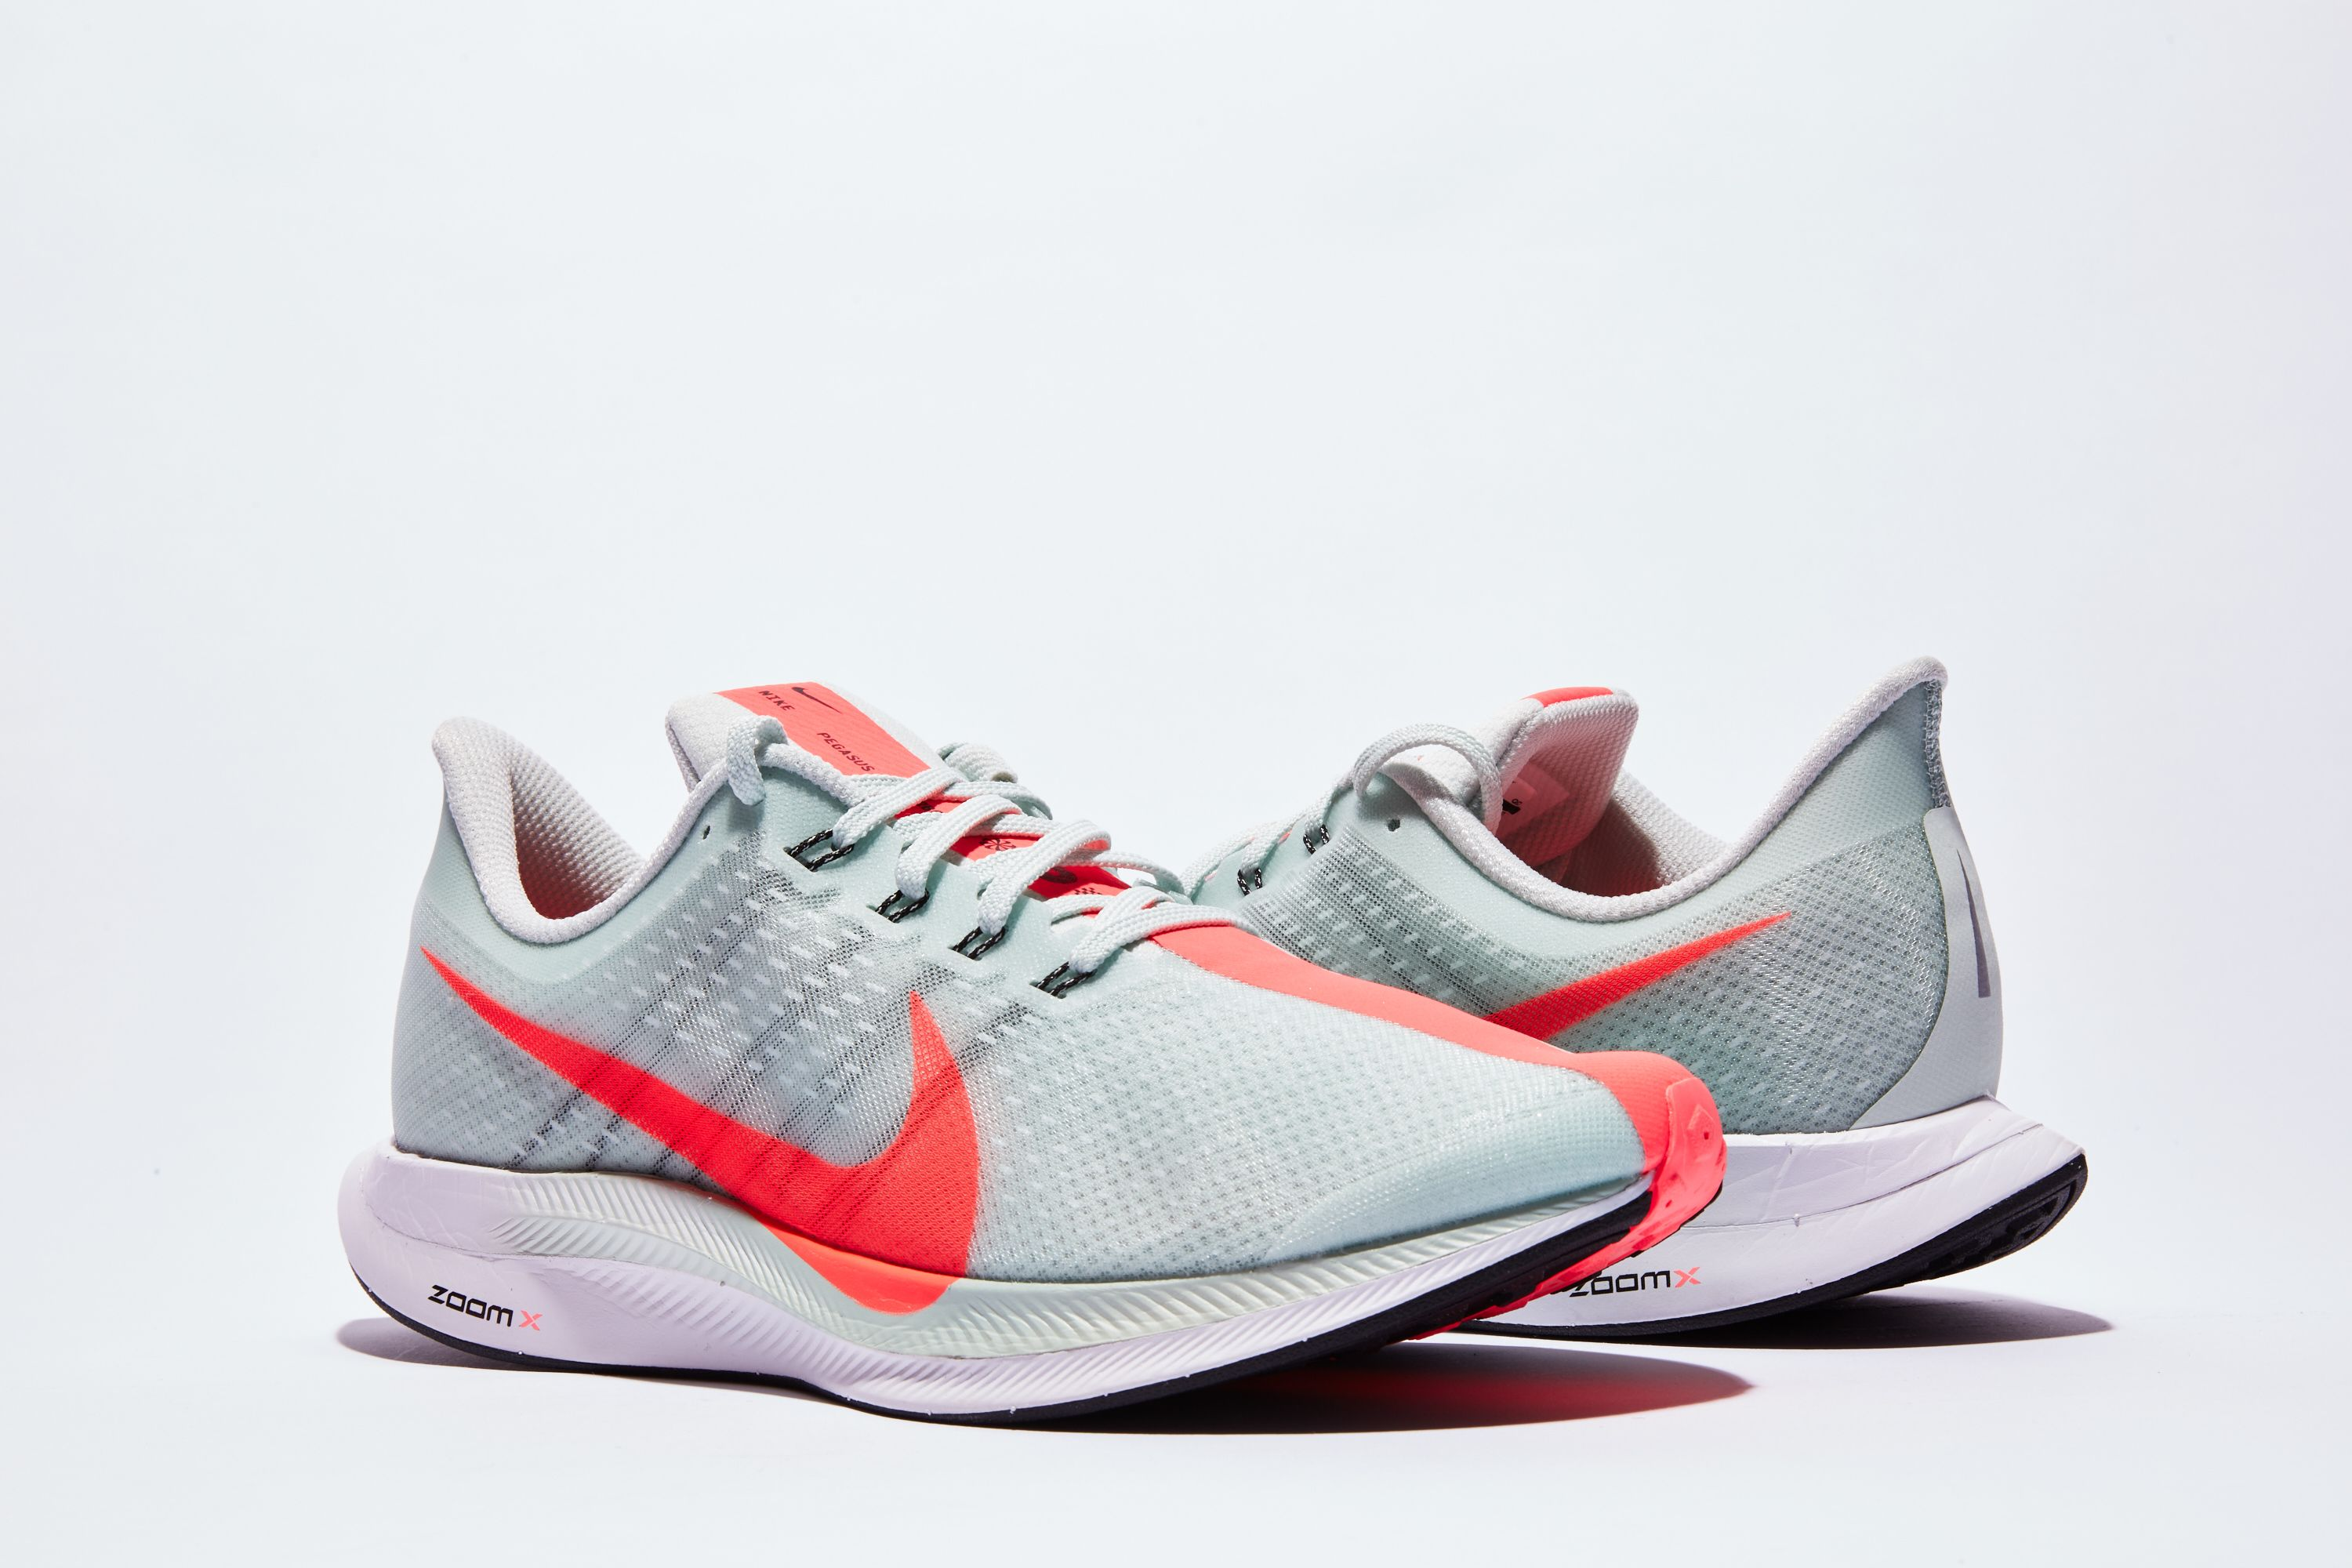 da583cc160197 Nike Zoom Pegasus 35 Turbo - Running Shoes for Speed